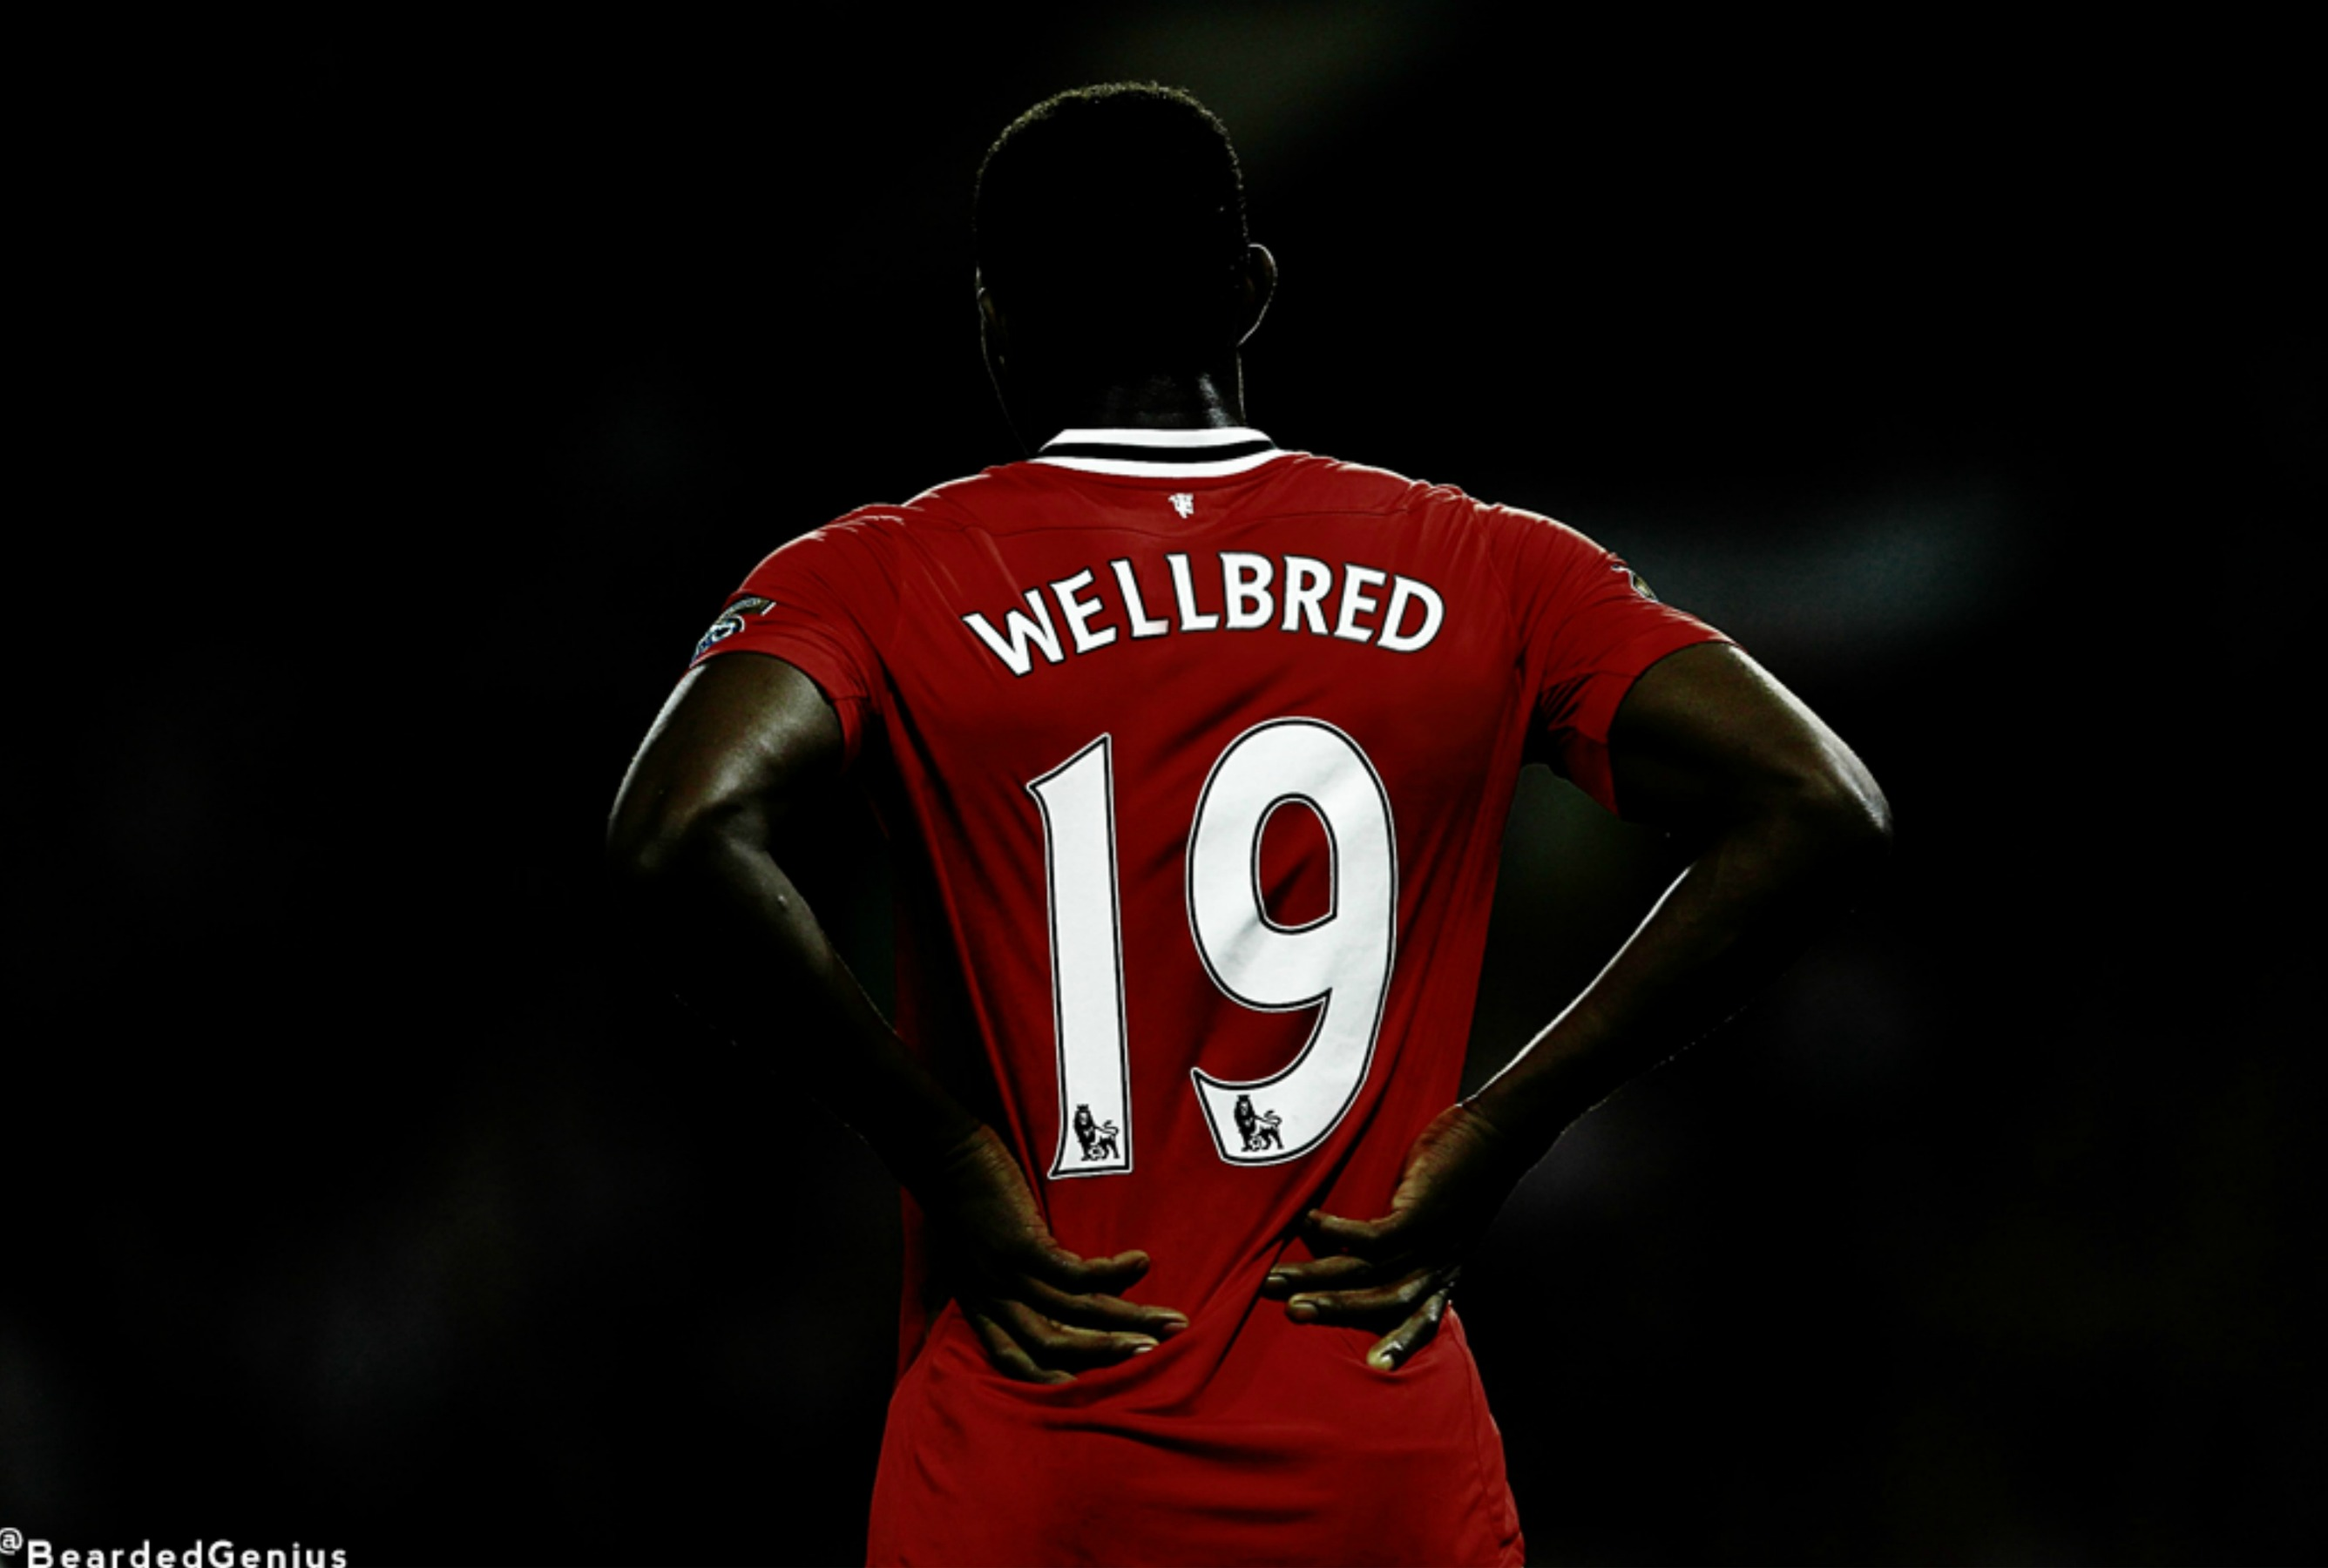 Well Bred Welbz